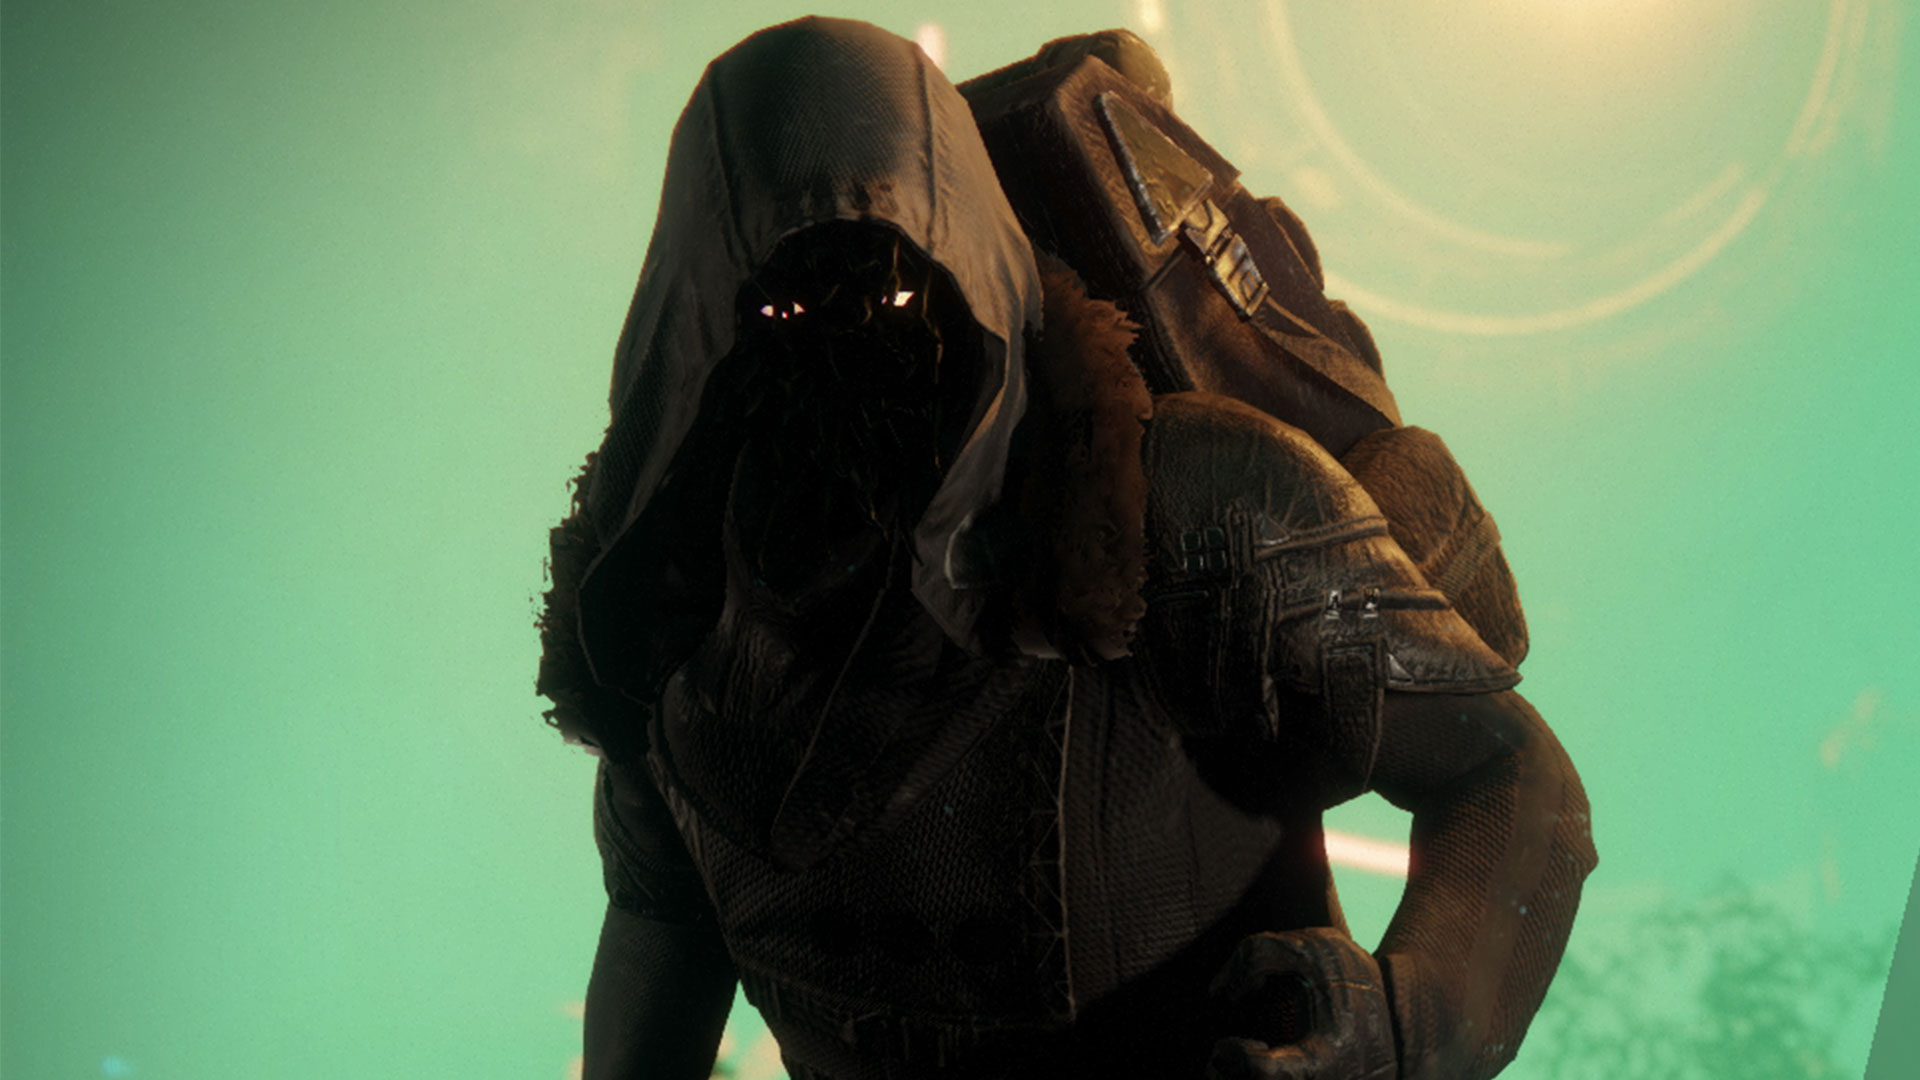 Destiny 2 Xur location and items, Jan. 17-20